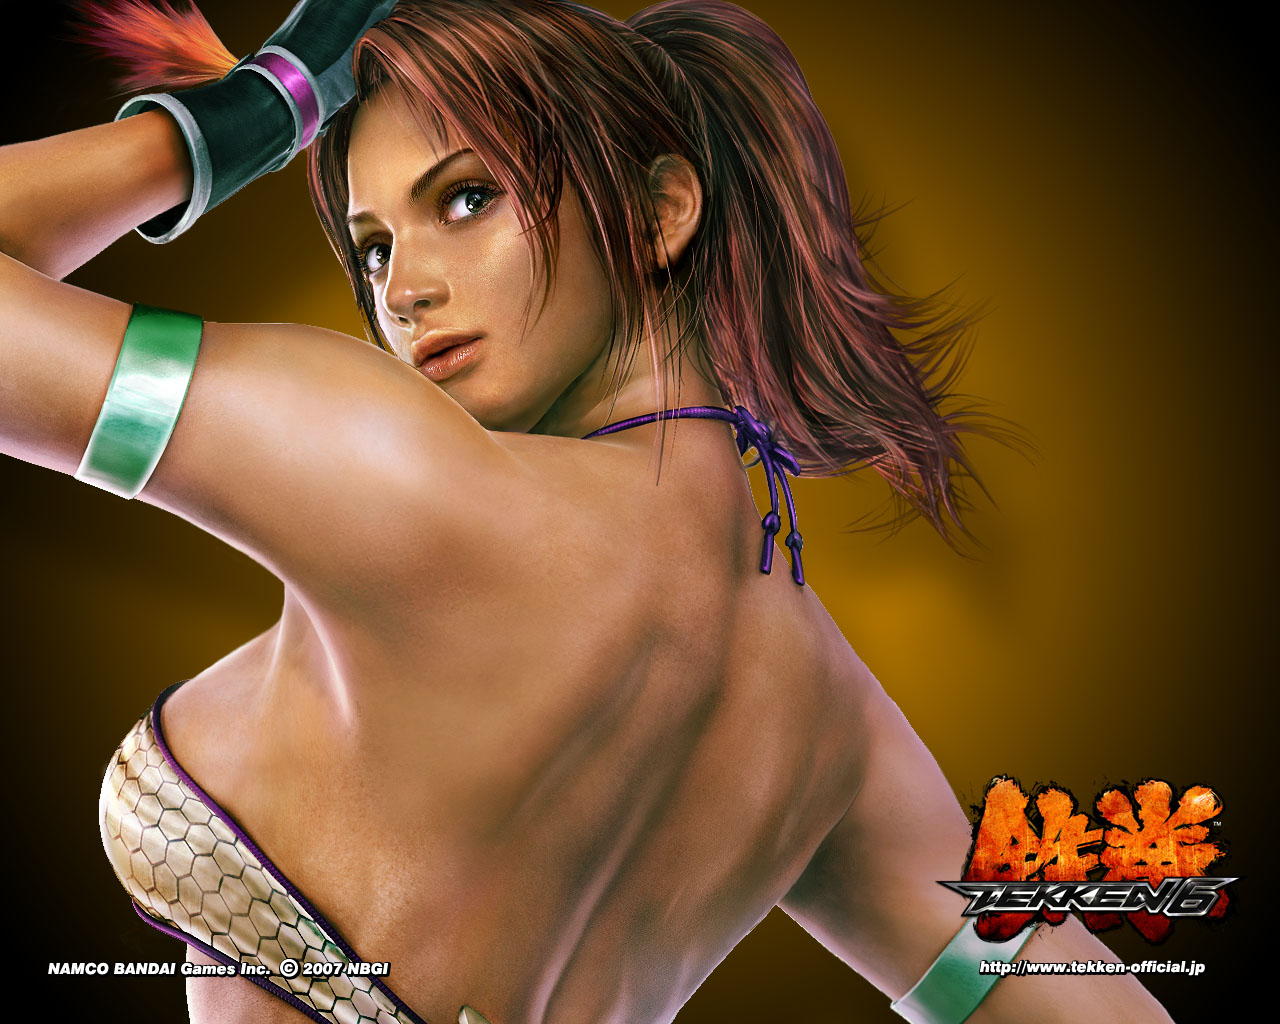 hd wallpapers all characters of tekken 6 game hd